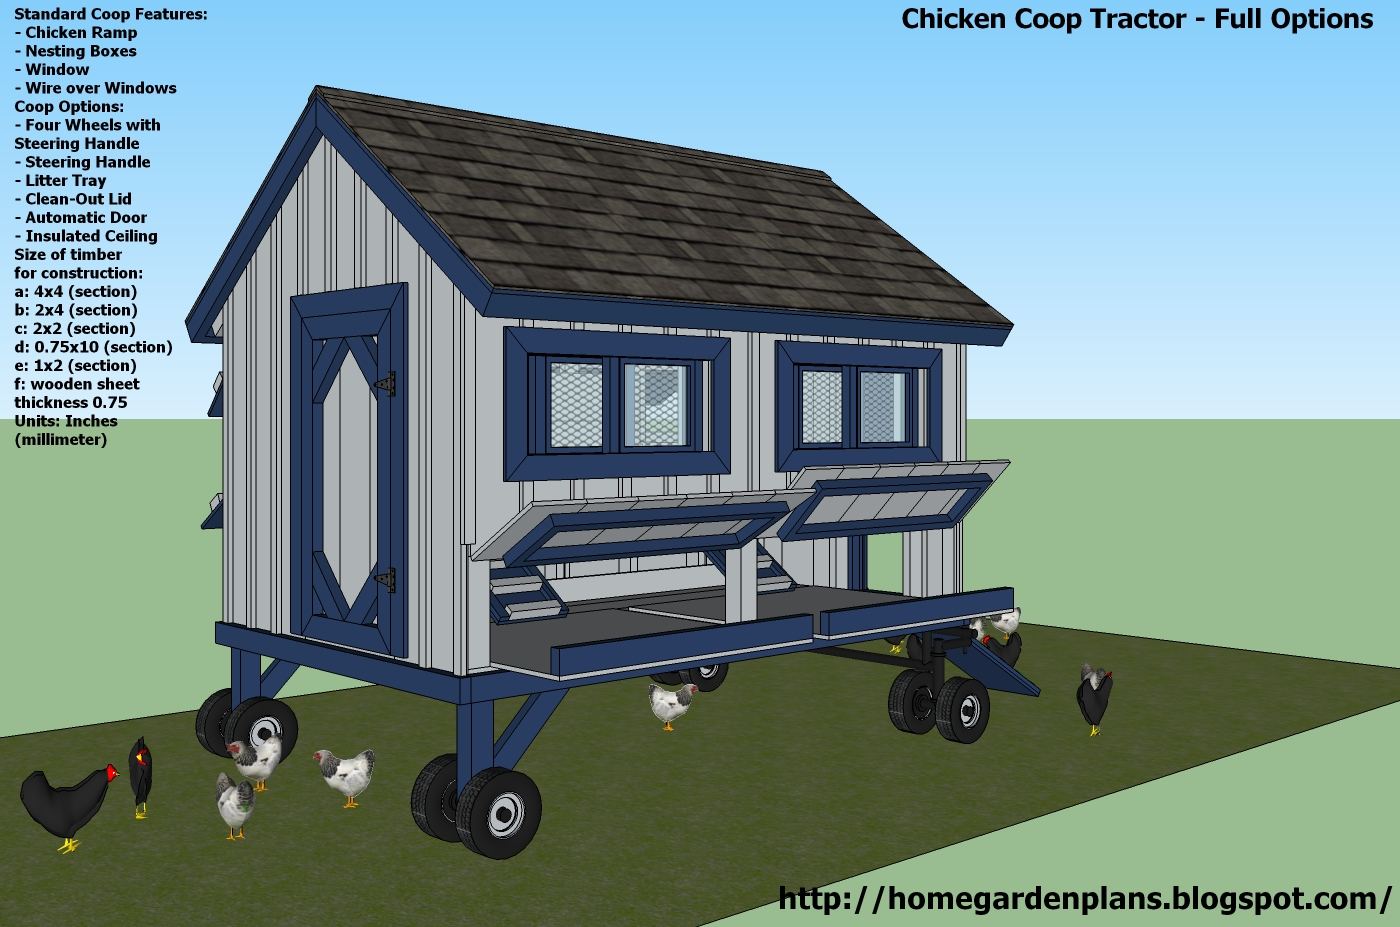 home garden plans: T300 Full Options - Free Chicken Coop Tractor Plans